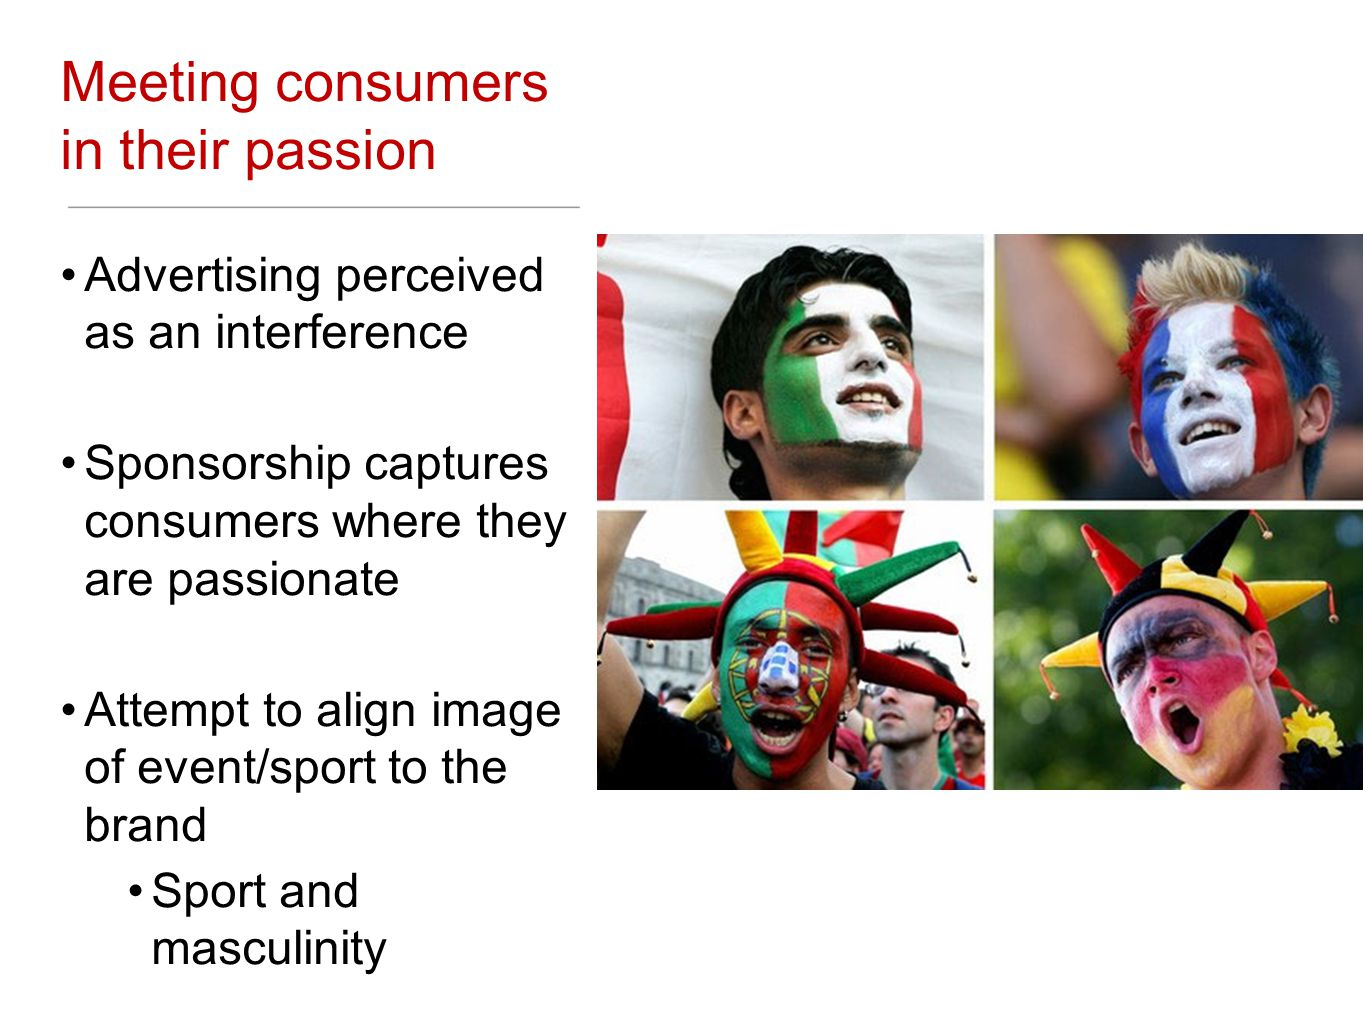 Meeting consumers in their passion Advertising perceived as an interference Sponsorship captures consumers where they are passionate Attempt to align image of event/sport to the brand Sport and masculinity